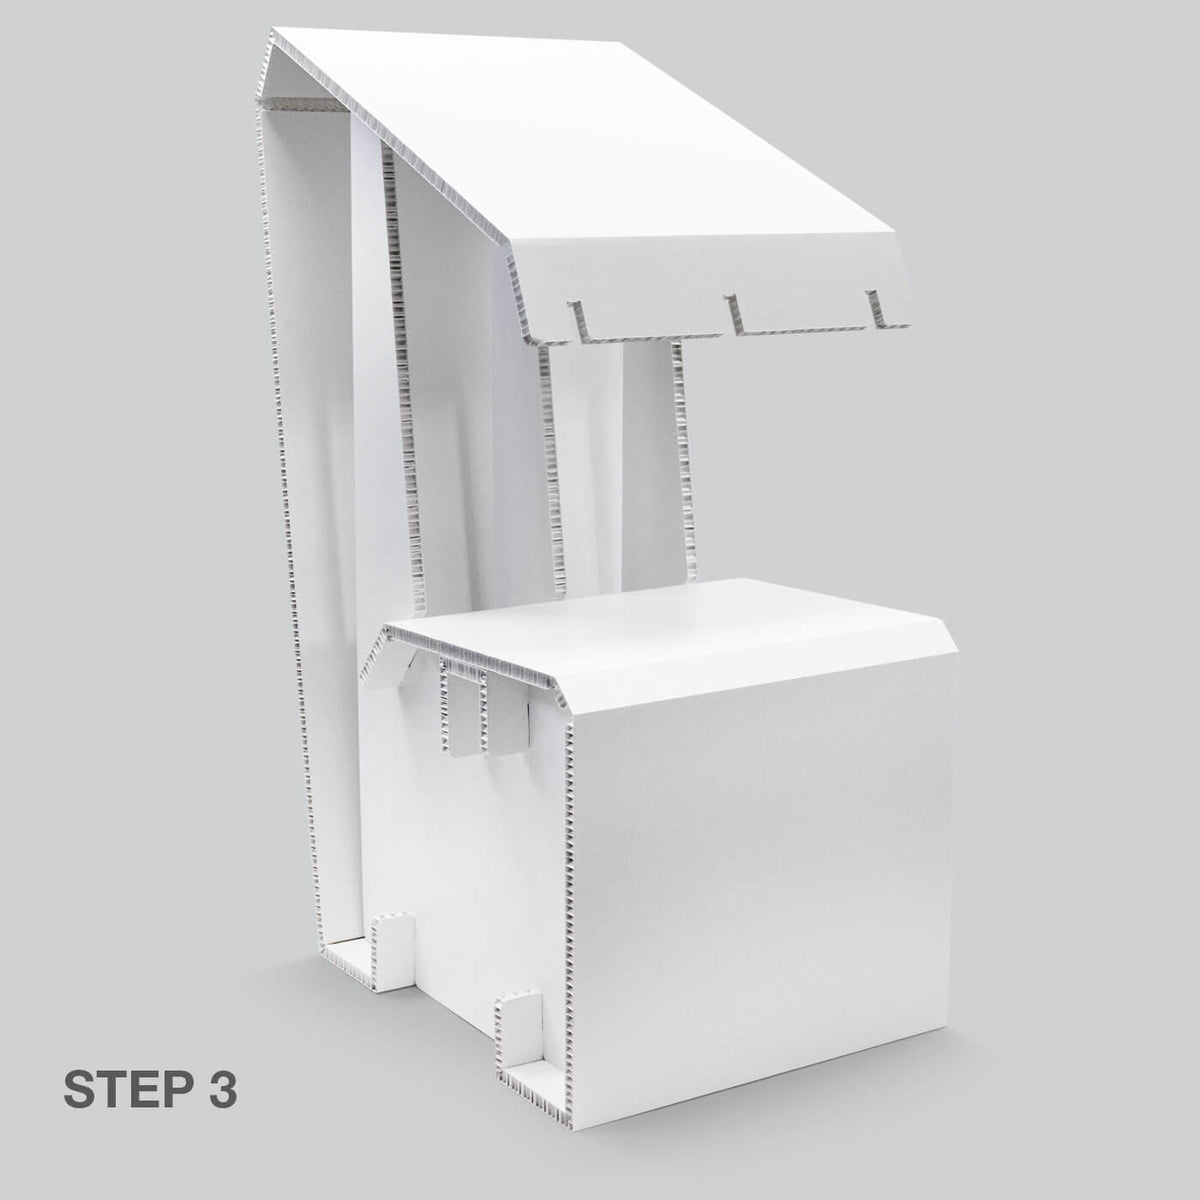 Stage 3 of White Chair for temporary home office solutions by Dufaylite